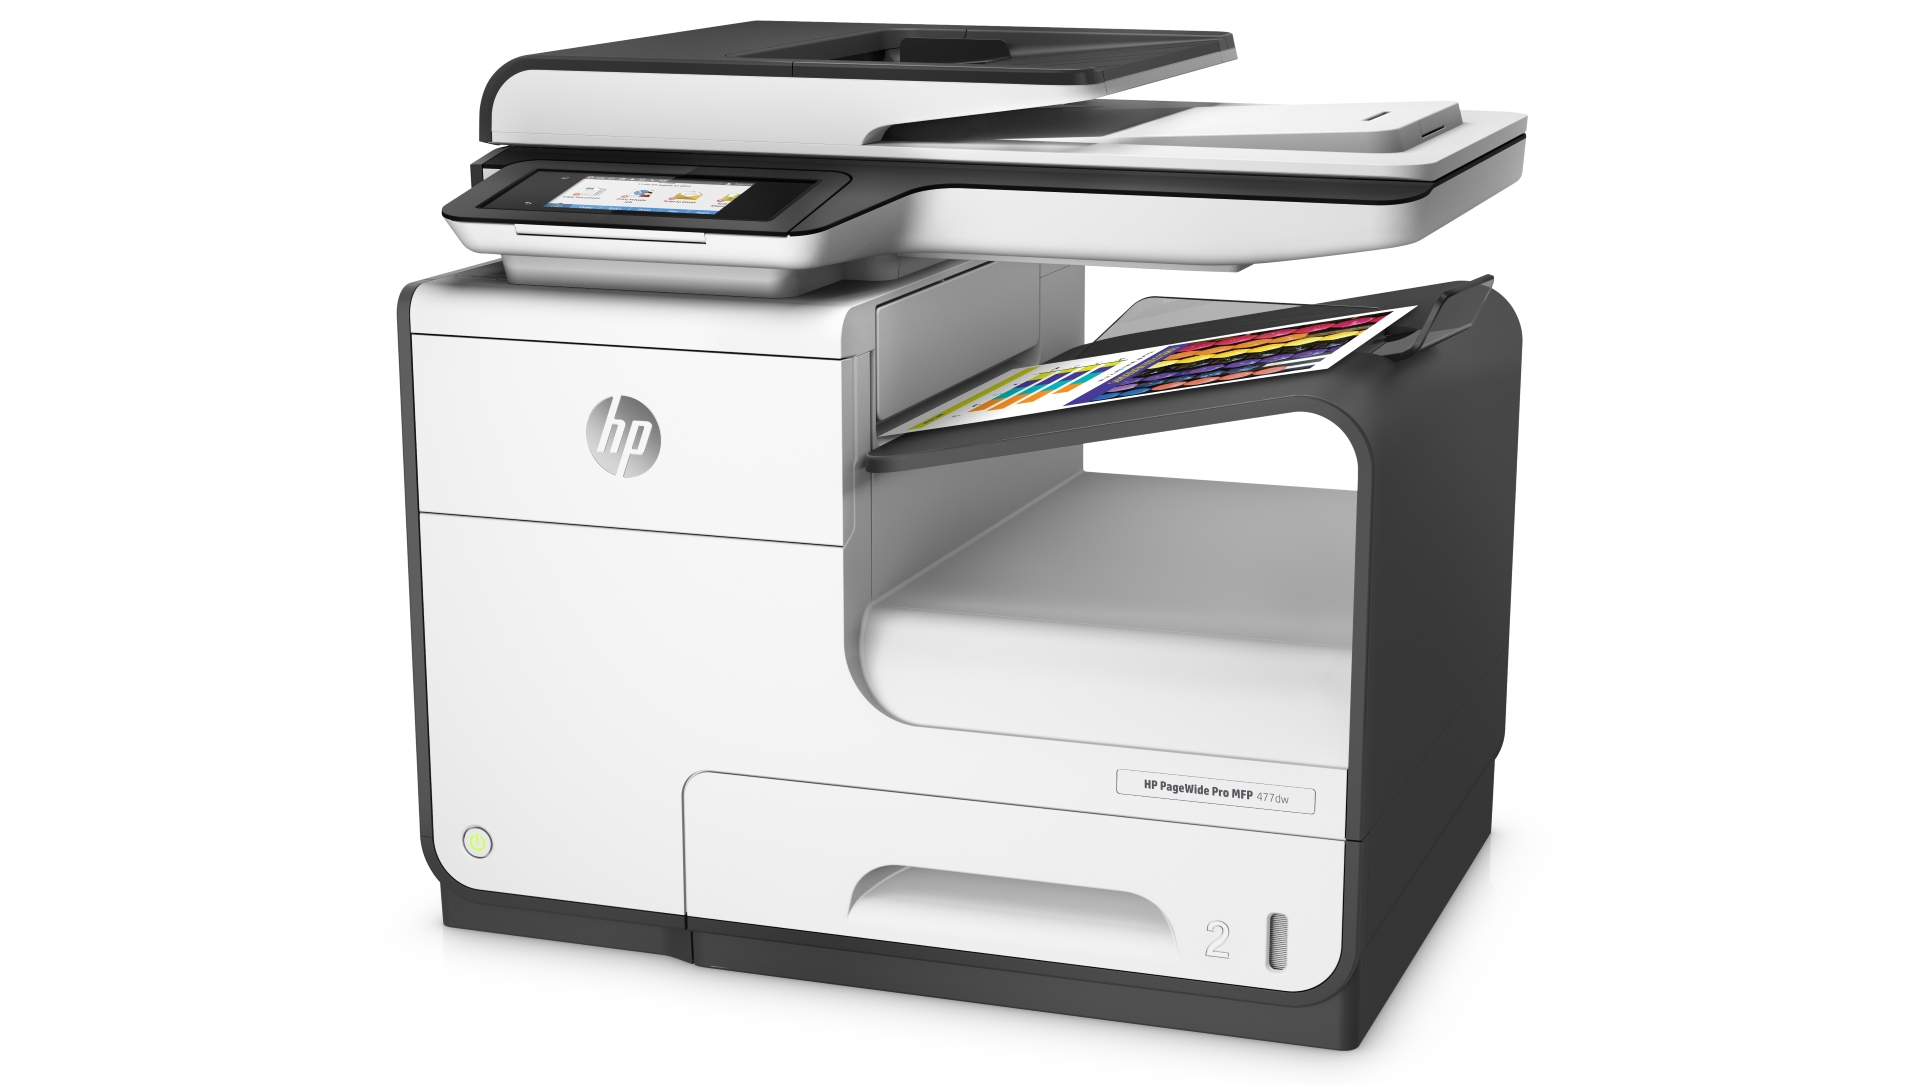 Best printer 2018: The best inkjet and laser printers for office or ...